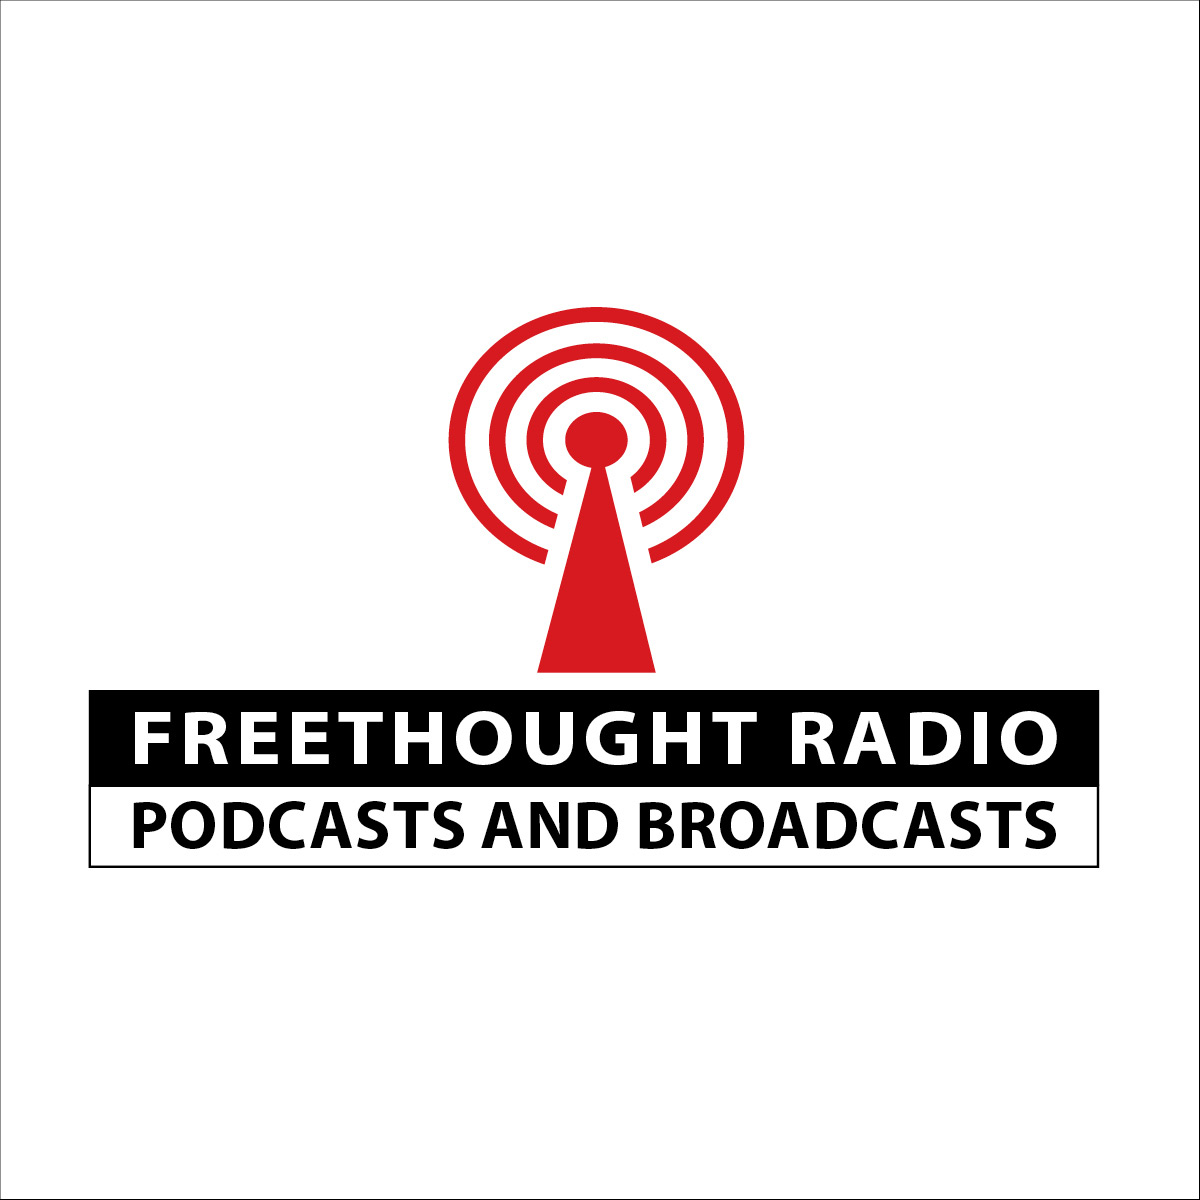 Freethought Radio